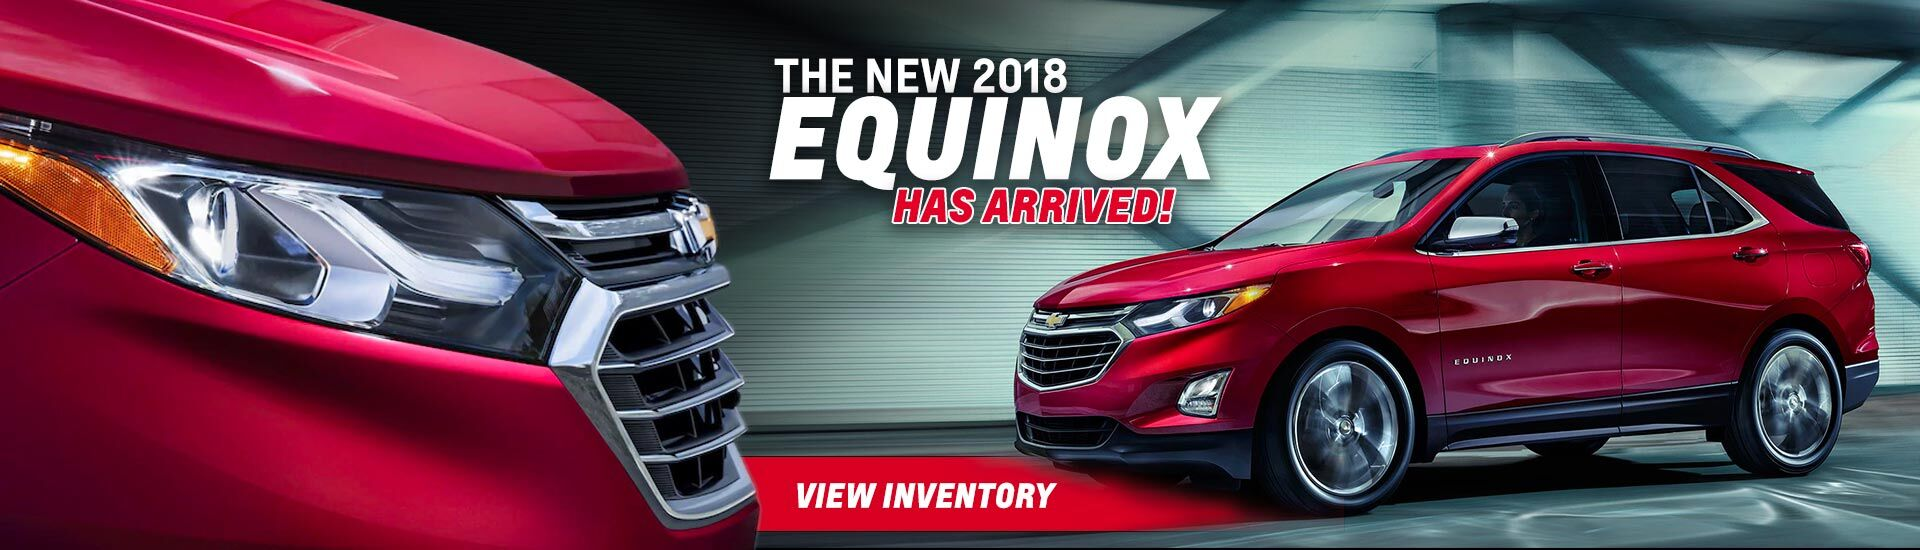 The New Equinox has arrived!